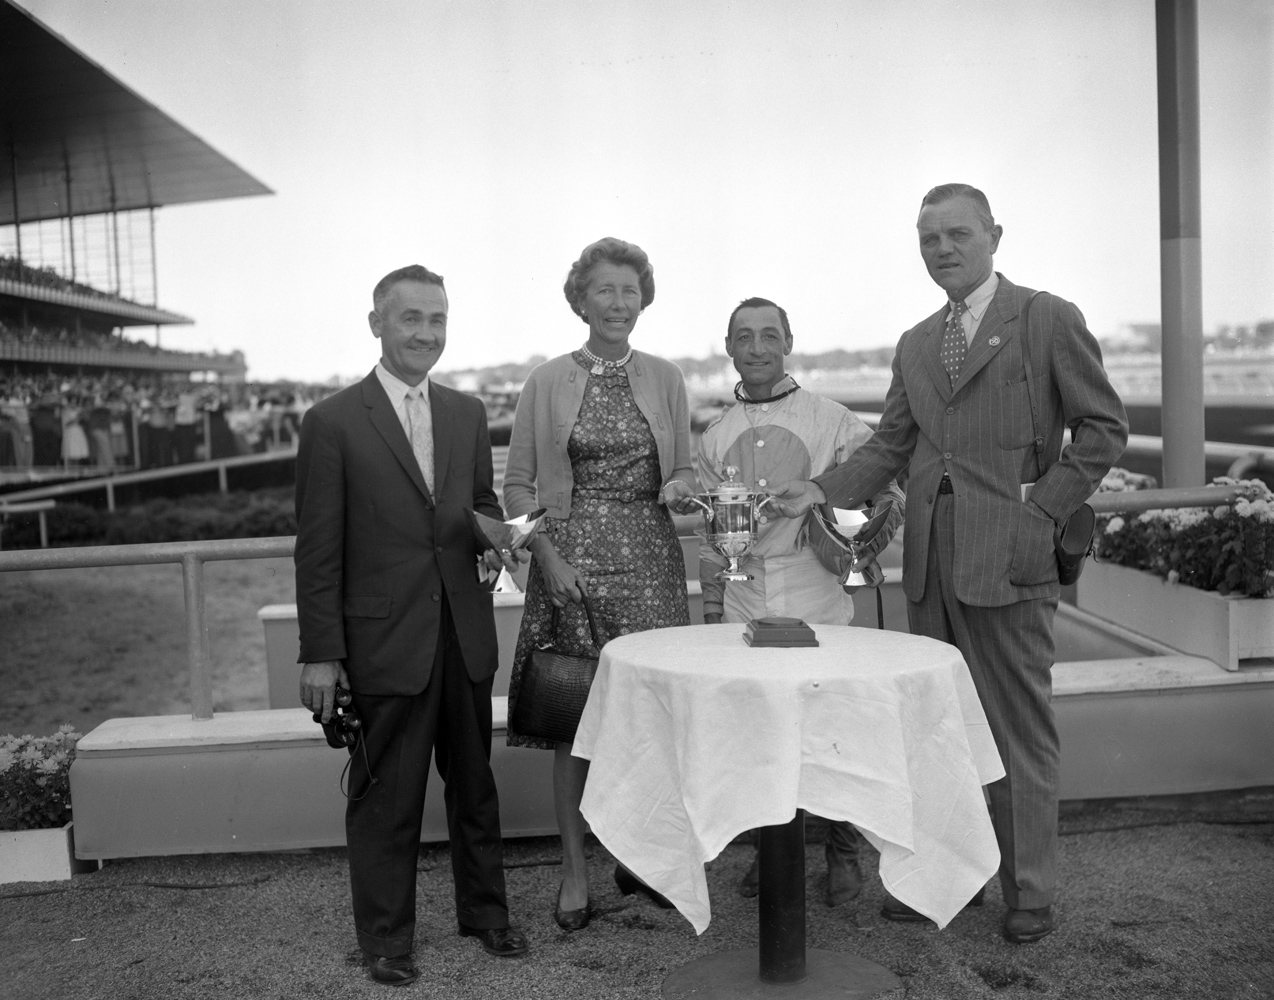 Carl Hanford, Allaire du Ppont, Eddie Arcaro, R. Strawbridge, Jr. at the trophy presentation for Kelso's 1960 Jerome Handicap win at Aqueduct (Keeneland Library Morgan Collection)